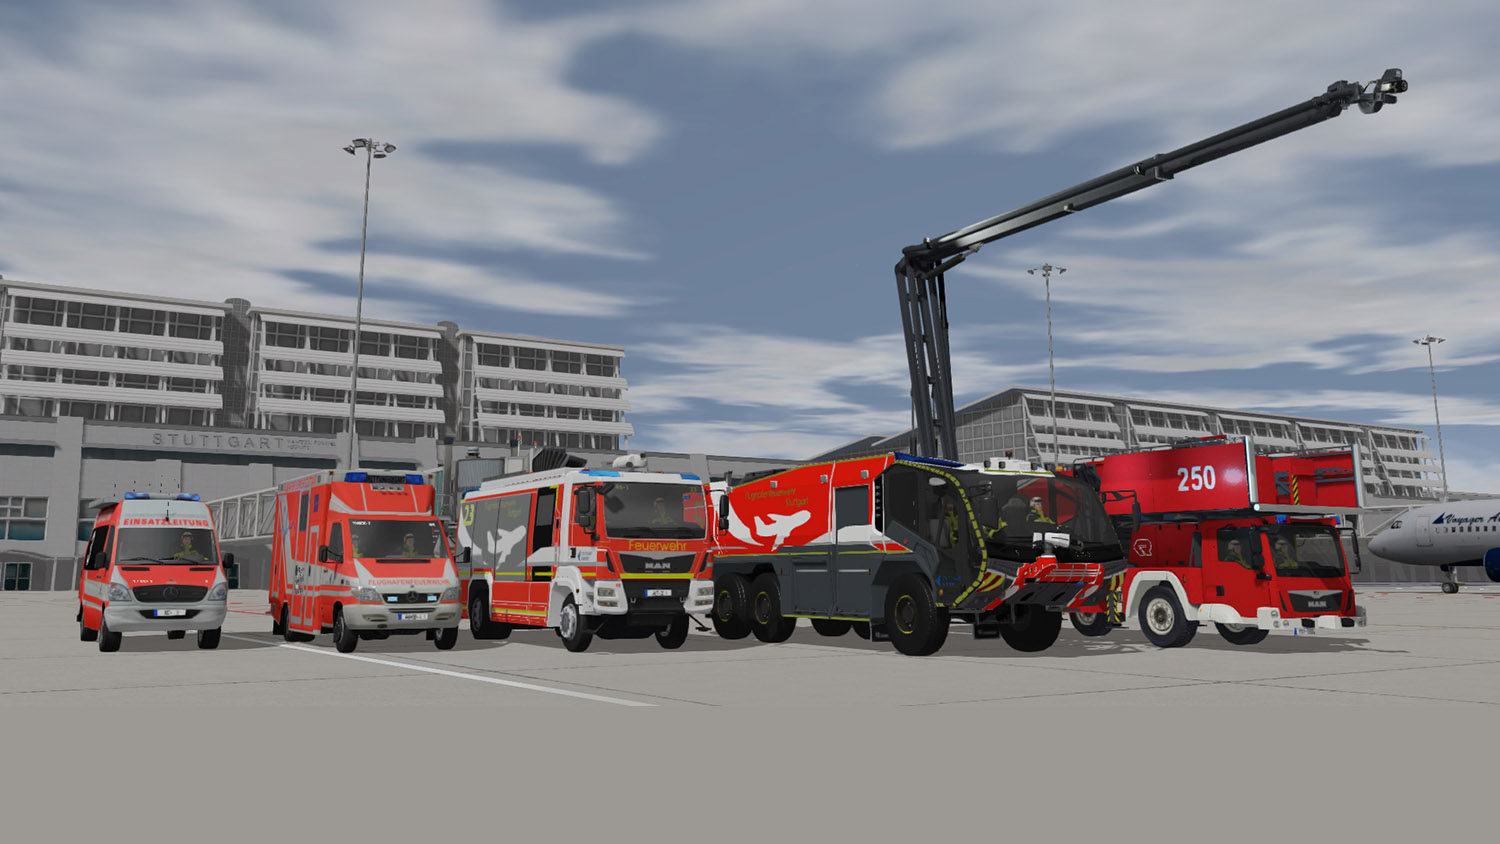 The fleet of Stuttgart Airport Vehicles that are used in ADMS to train familiarization, driving procedures, and ARFF response.